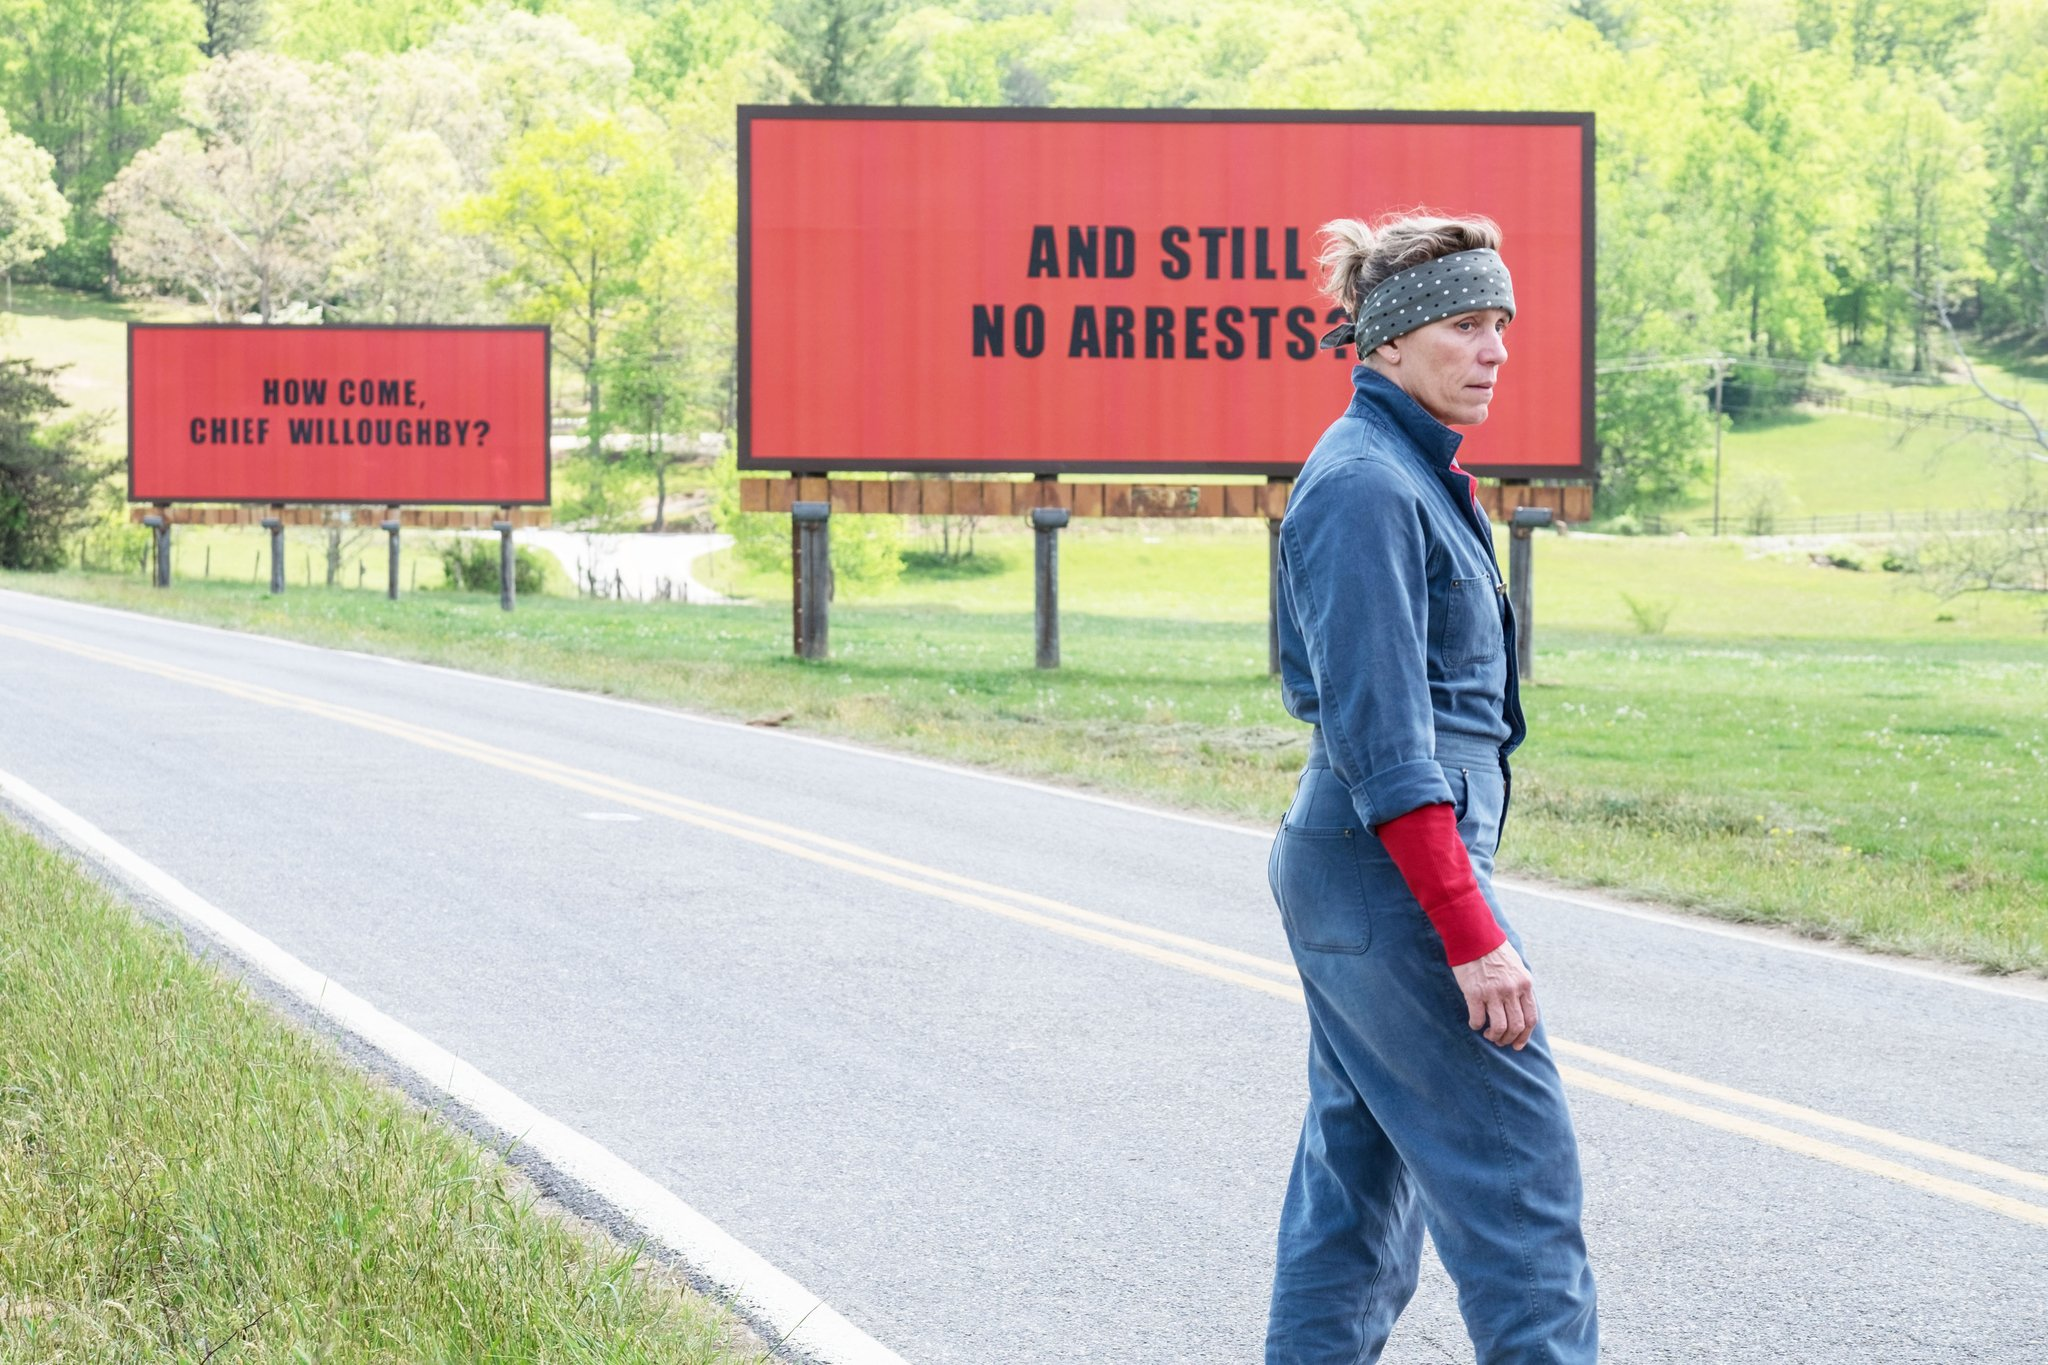 threebillboards.jpg